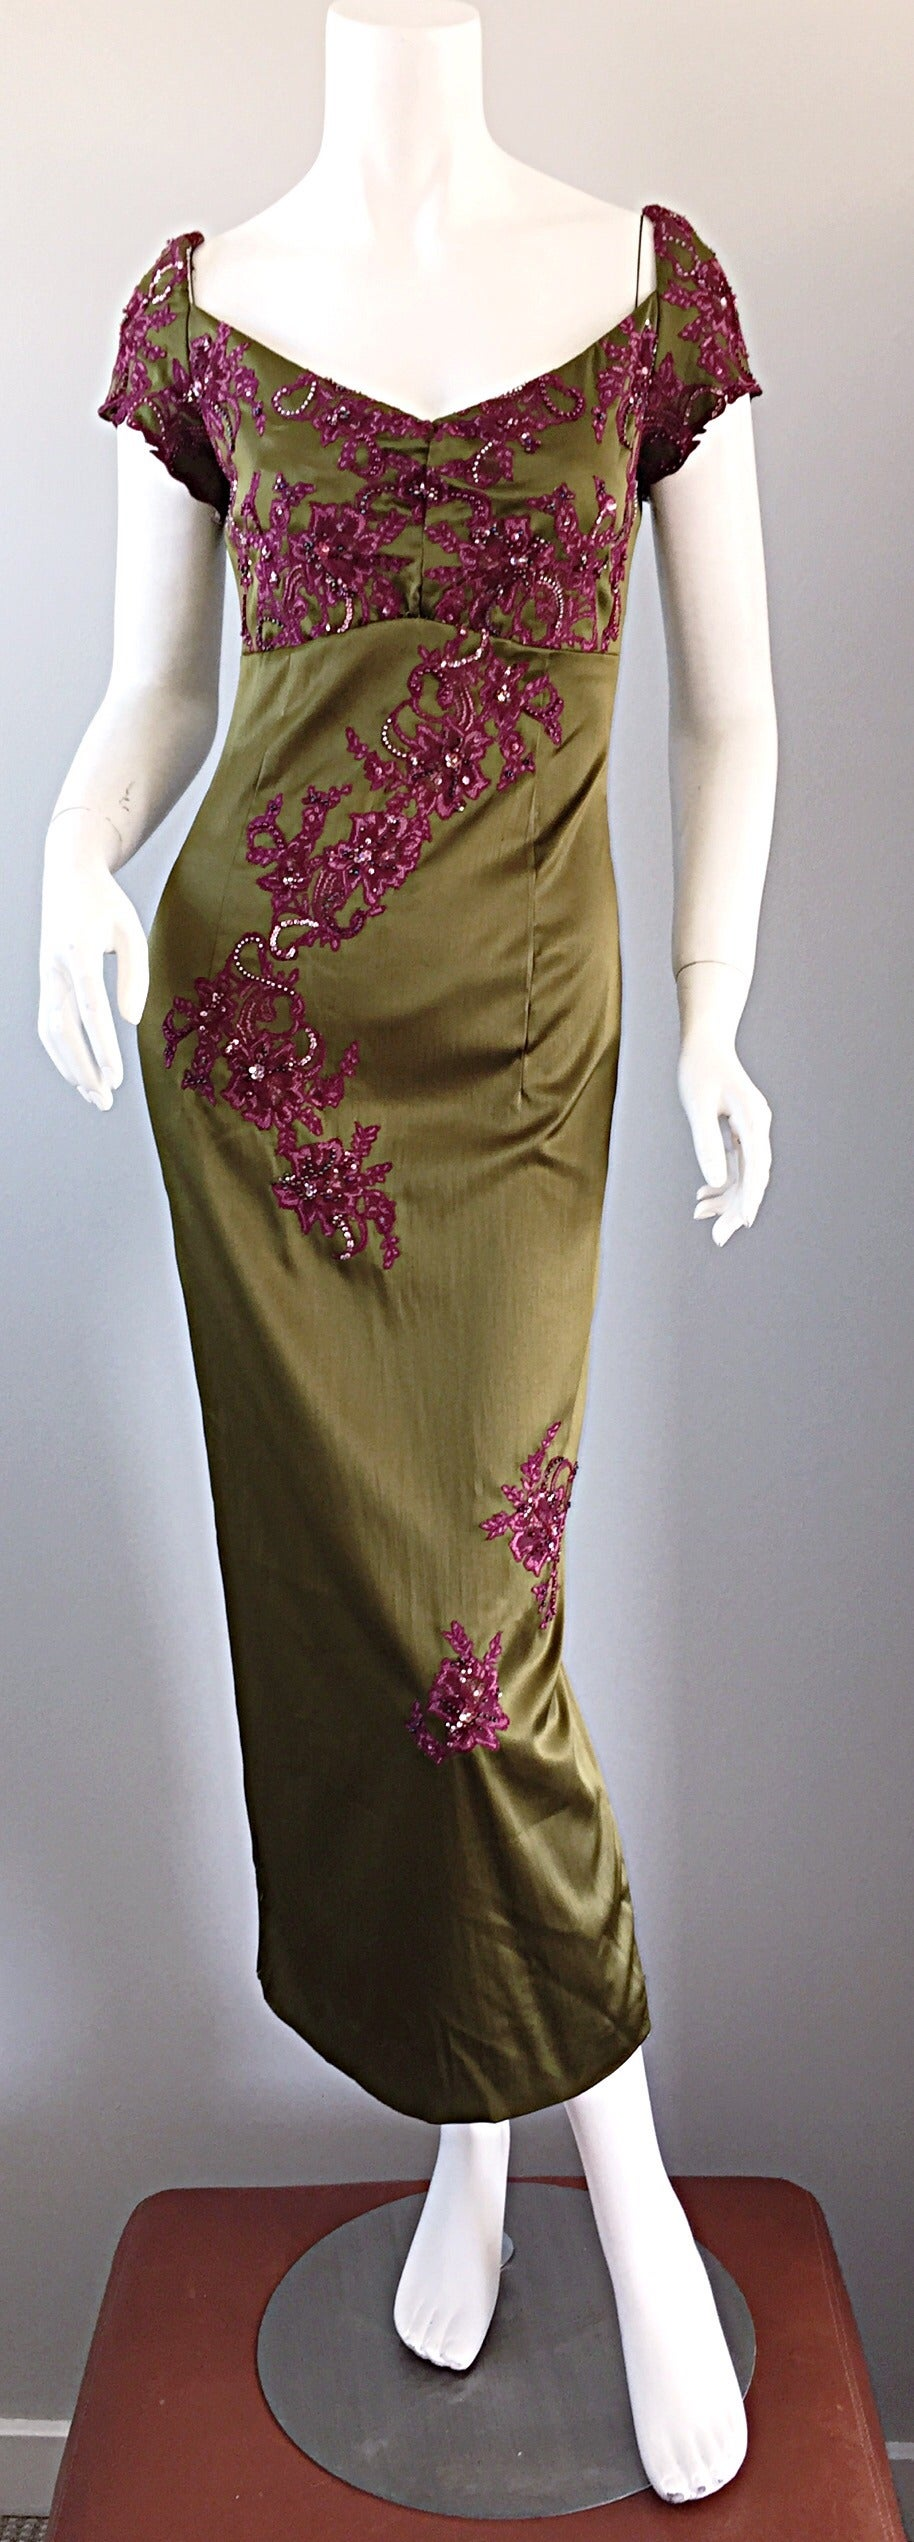 Drop dead gorgeous Mandalay dress! Rich chartreuse / olive green color, mixed with a beautiful purple merlot. Lace work and beading throughout the entire dress. Extremely well made--retailed for over $2,300! Elastic at sleeves, so can fit a variety